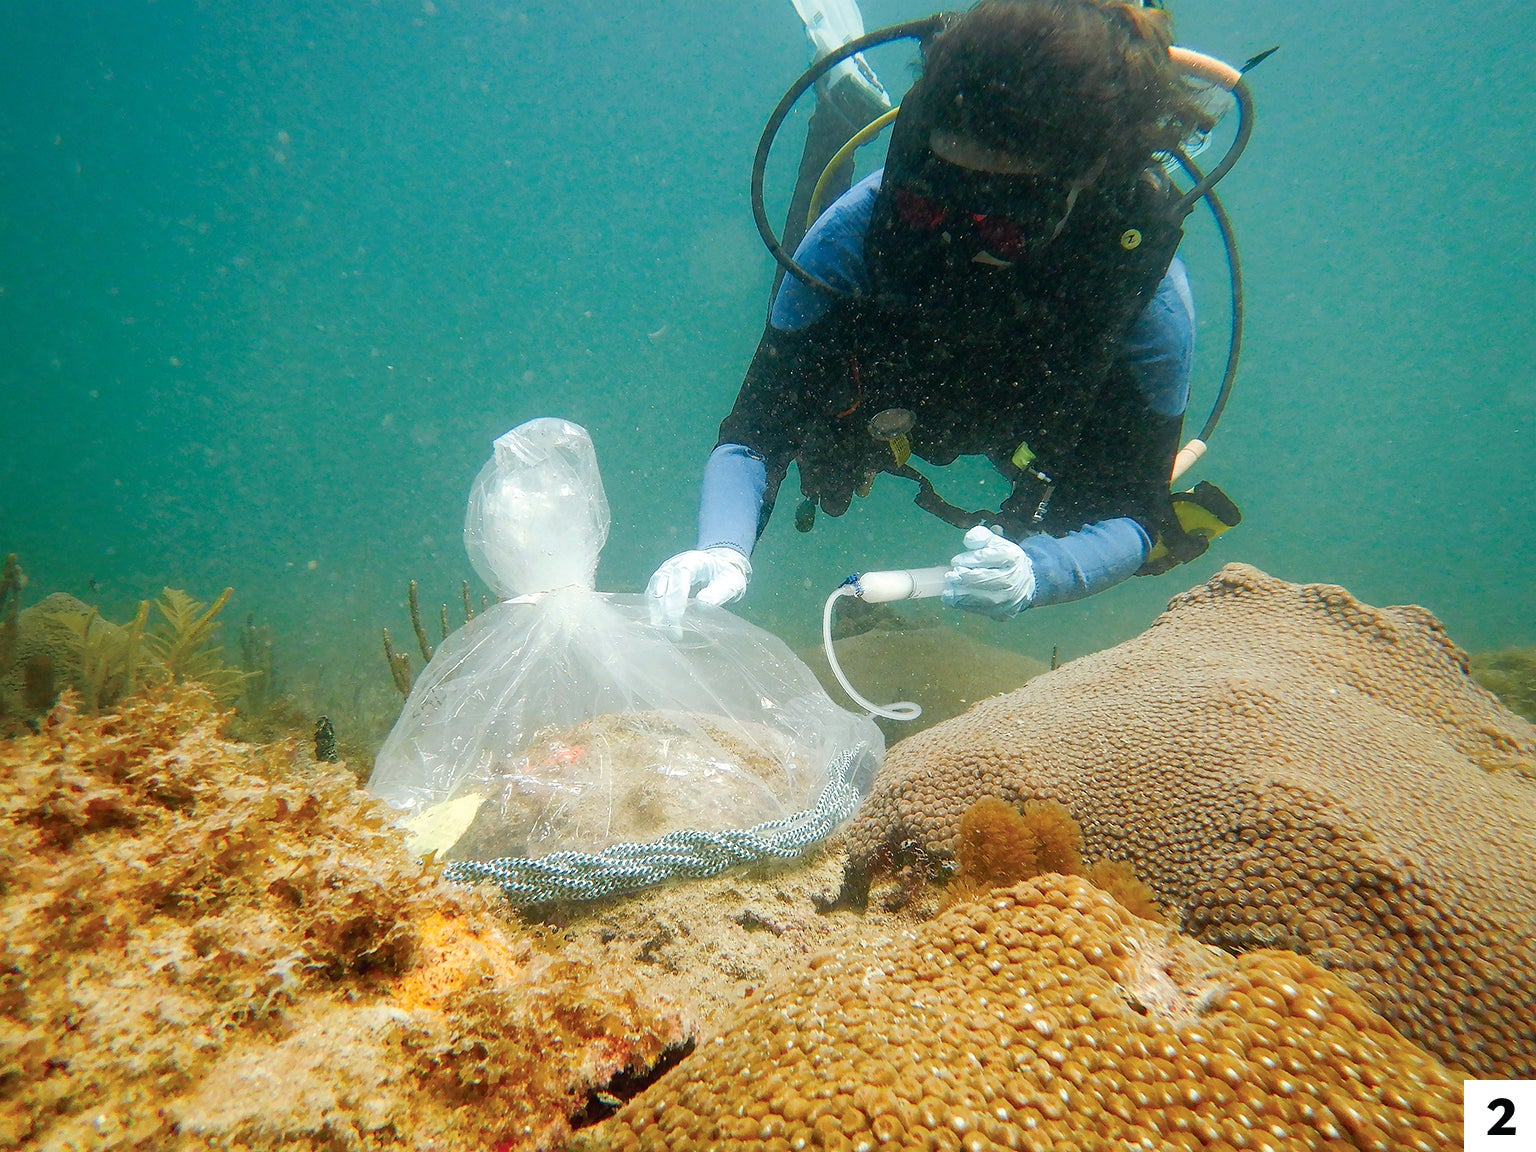 Researcher Kelly Pitts pumps a liquid form of probiotic onto corals off the Florida coast